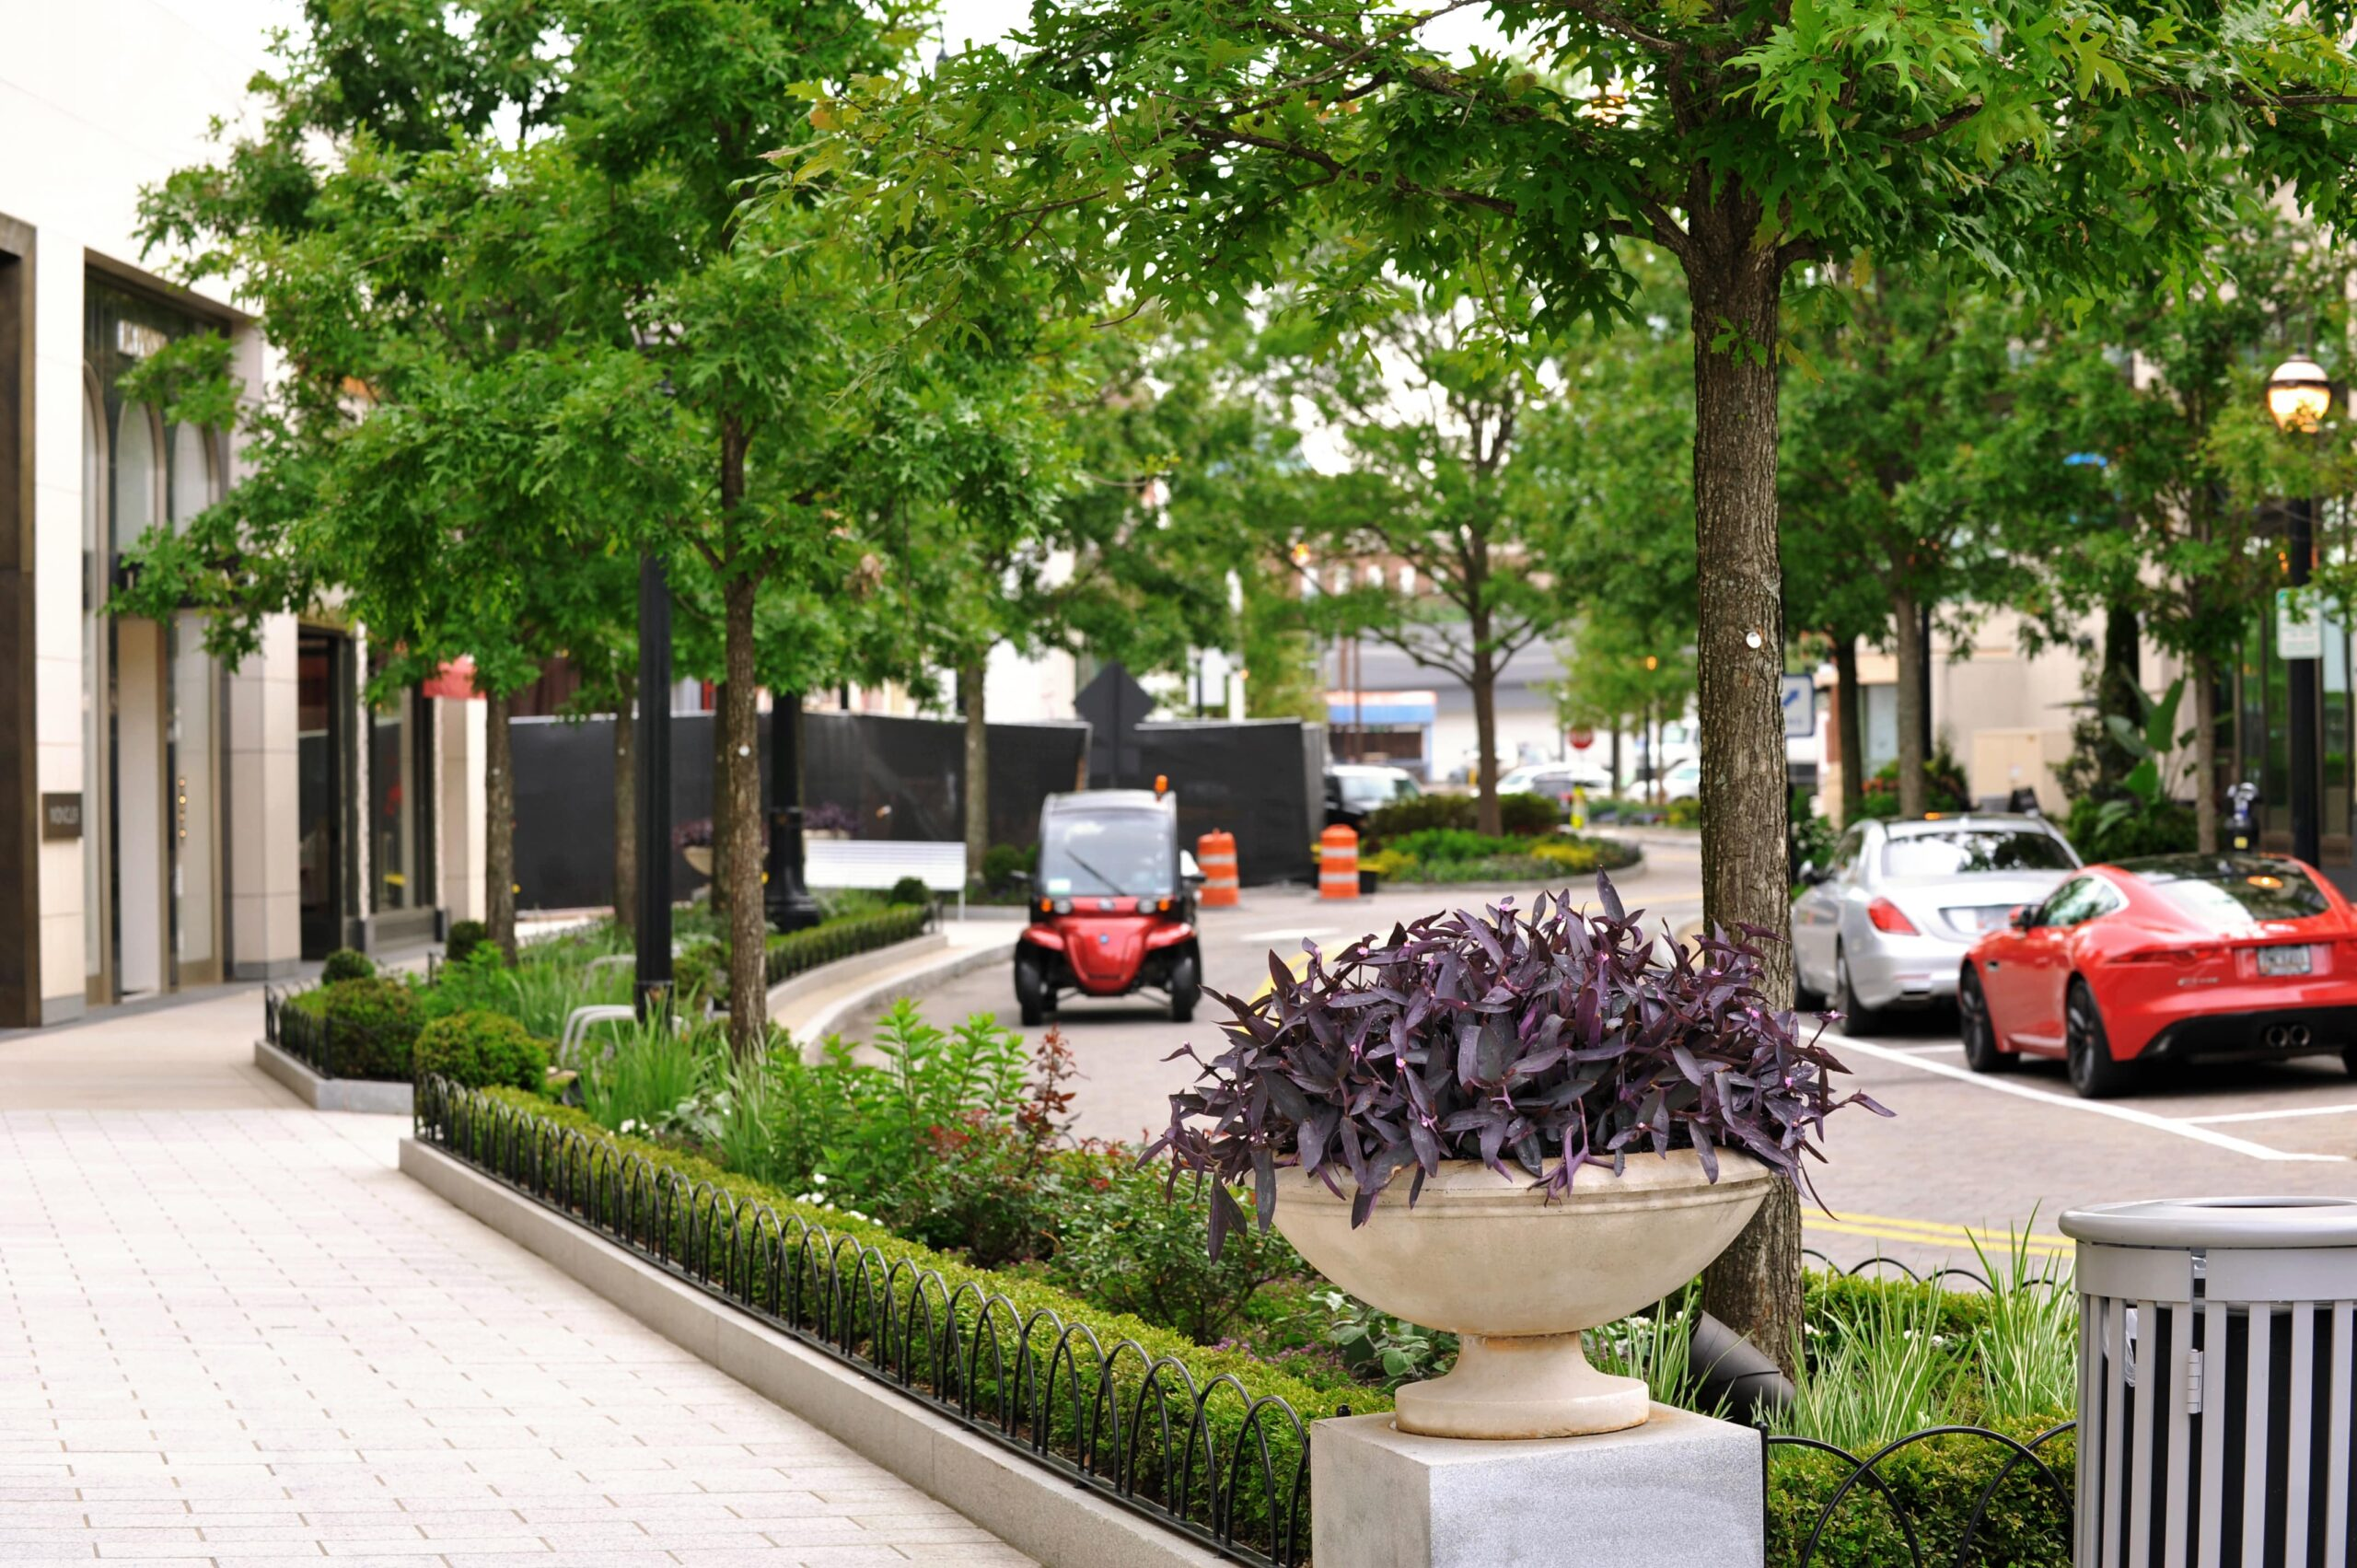 Buckhead Village District: How Landscaping Makes Daily Differences